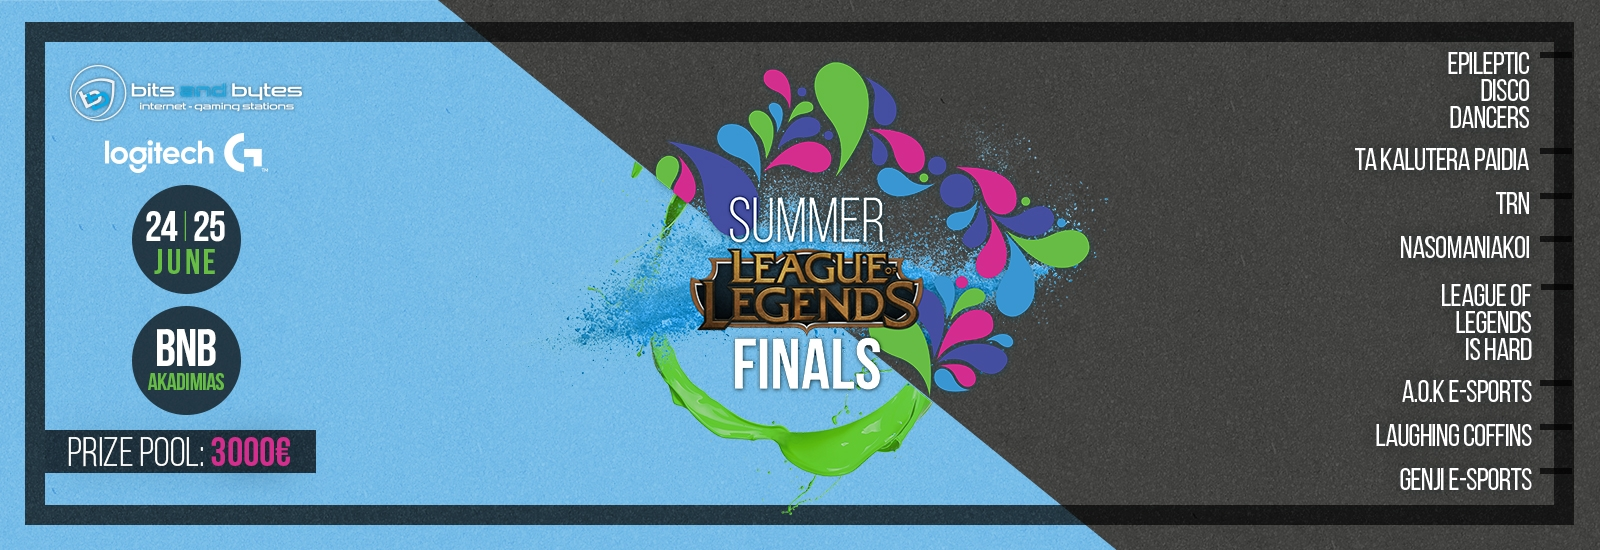 League of Legends - BCHALLENGER LAN Finals @ 24-25 Jun